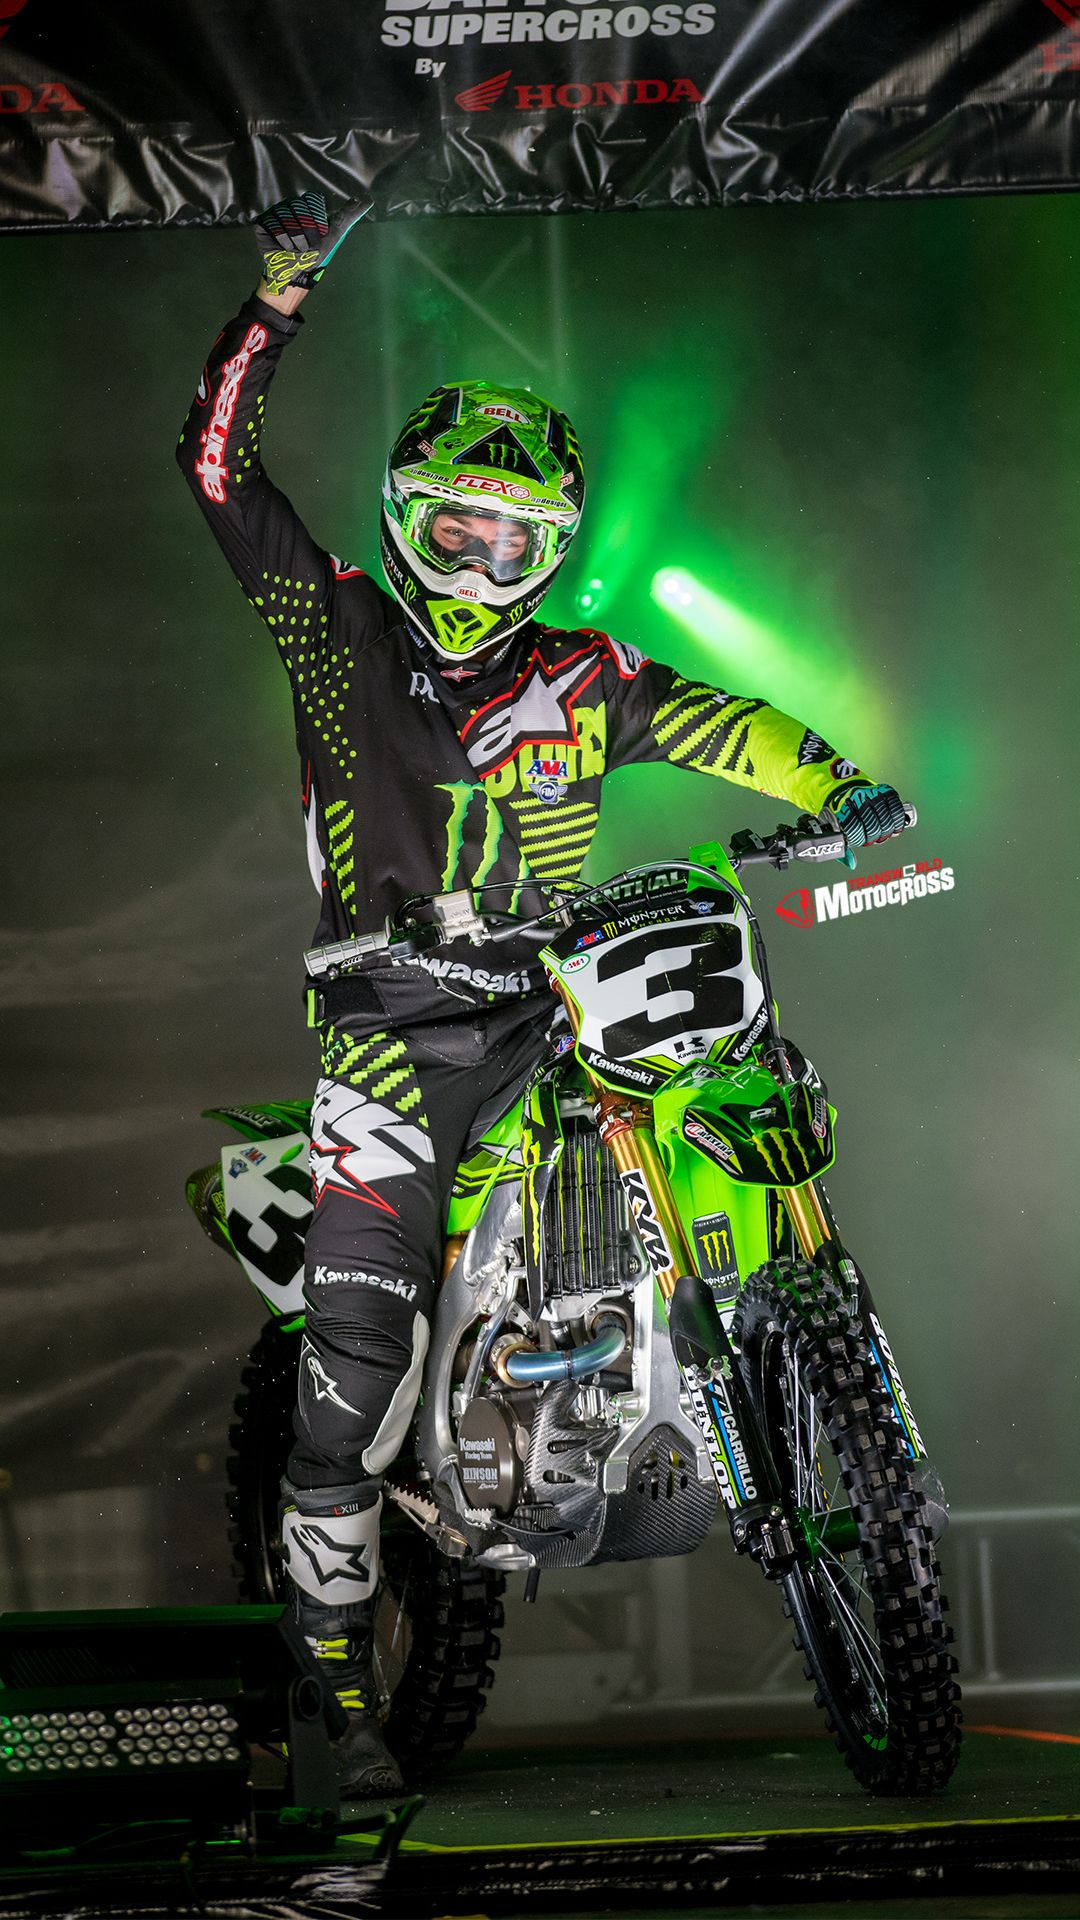 Motocross Wallpapers & Background... - Free Download on Save4.net